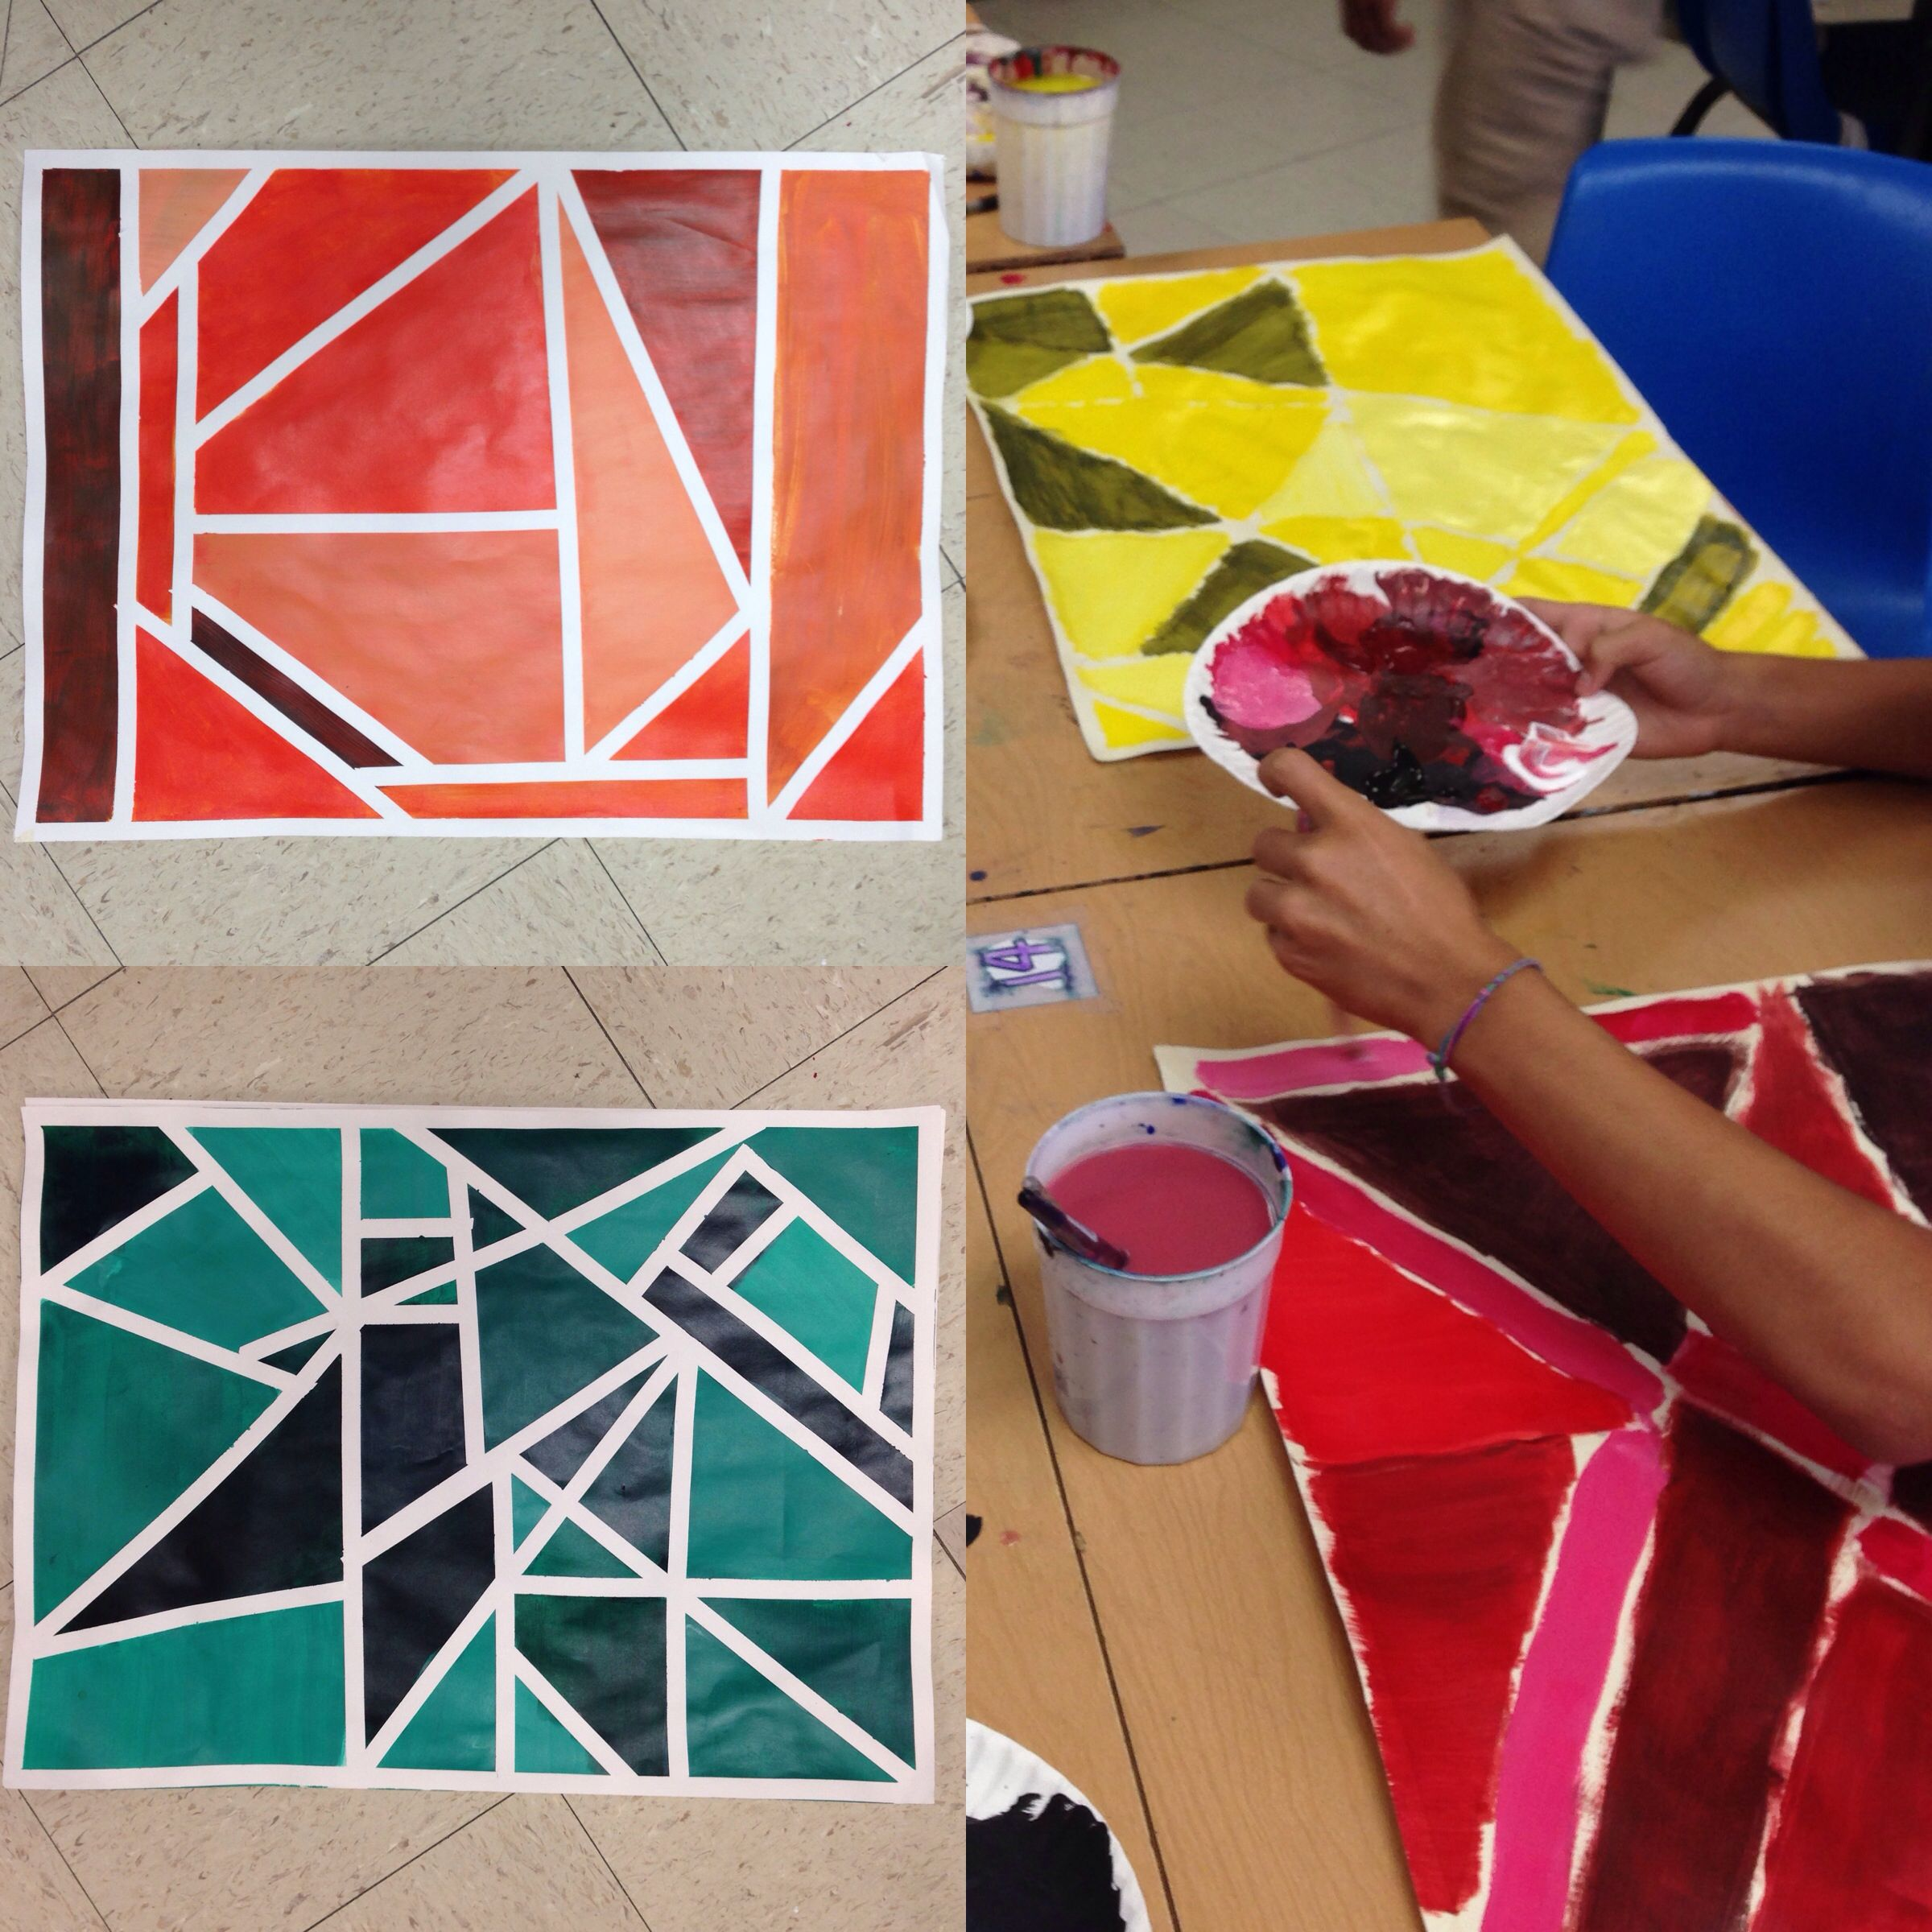 Color value art projects - Tine Shade Paintings Add Zentangle Drawings In White Tape Areas Value Color Monochromatic Non Objective